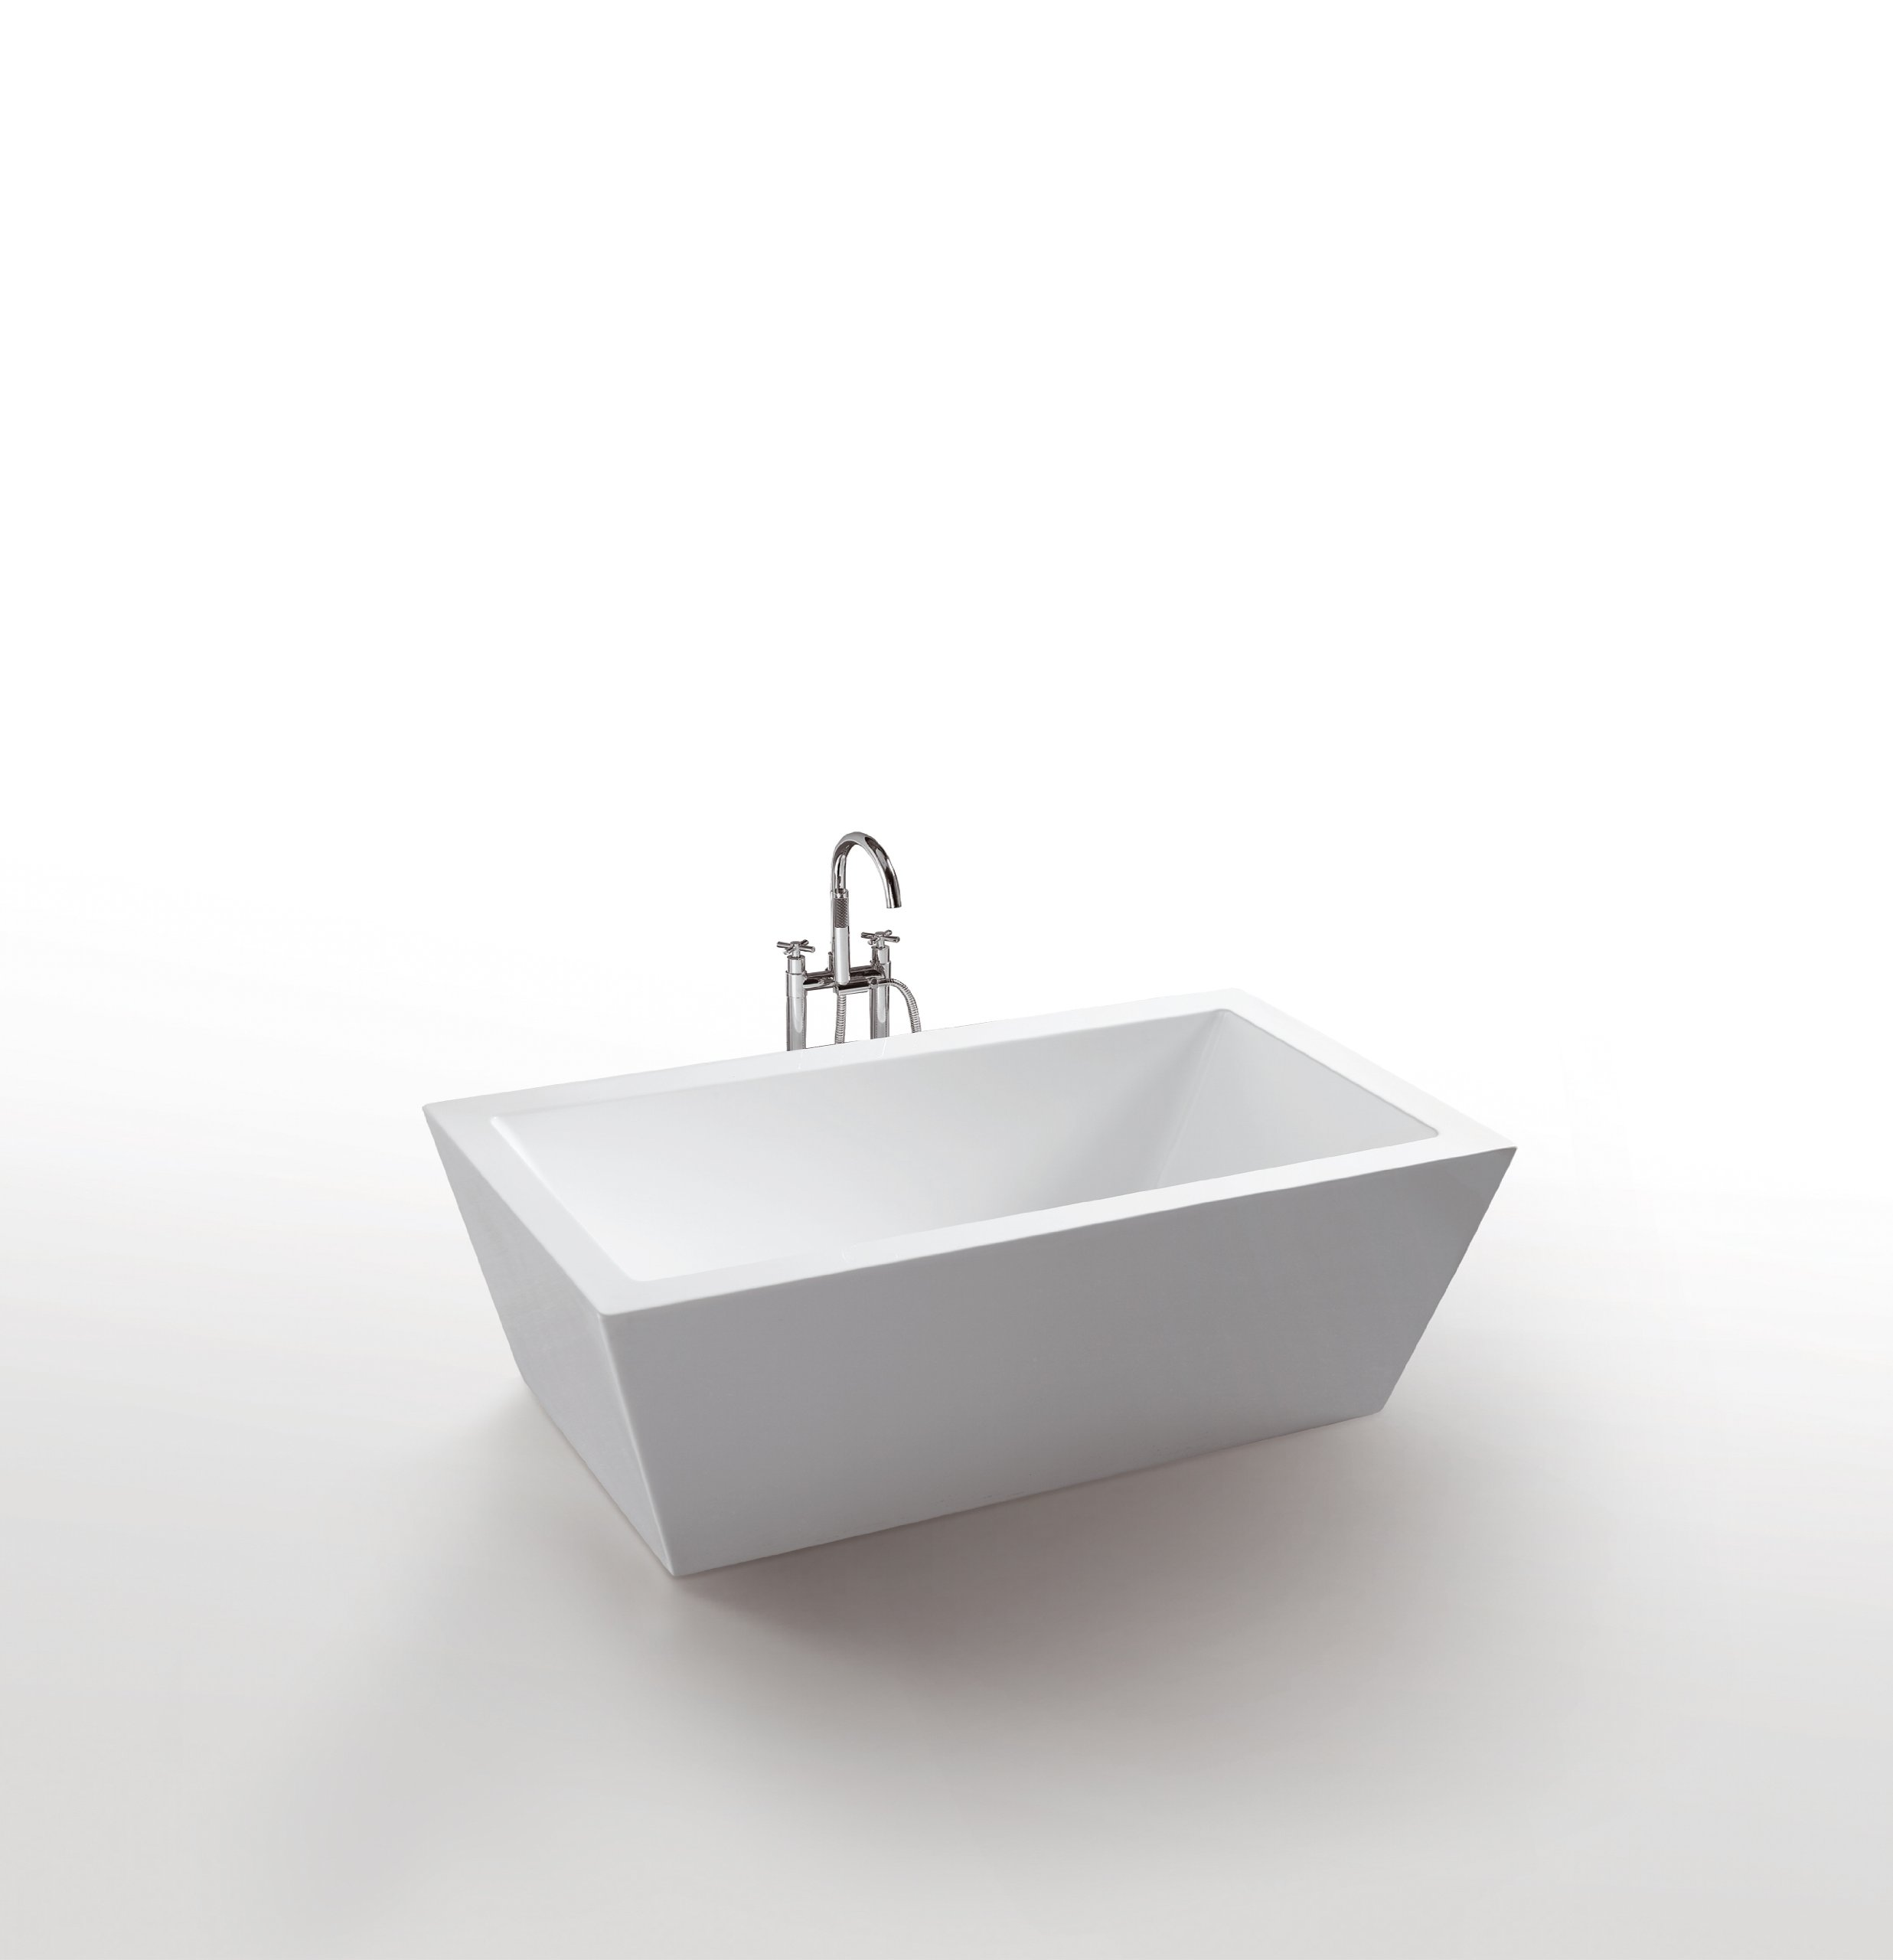 Virtu USA VTU-1367 67-Inch by 27.5-Inch Freestanding Soaking Tub with Universal Drain from The Serenity Collection, White Finish